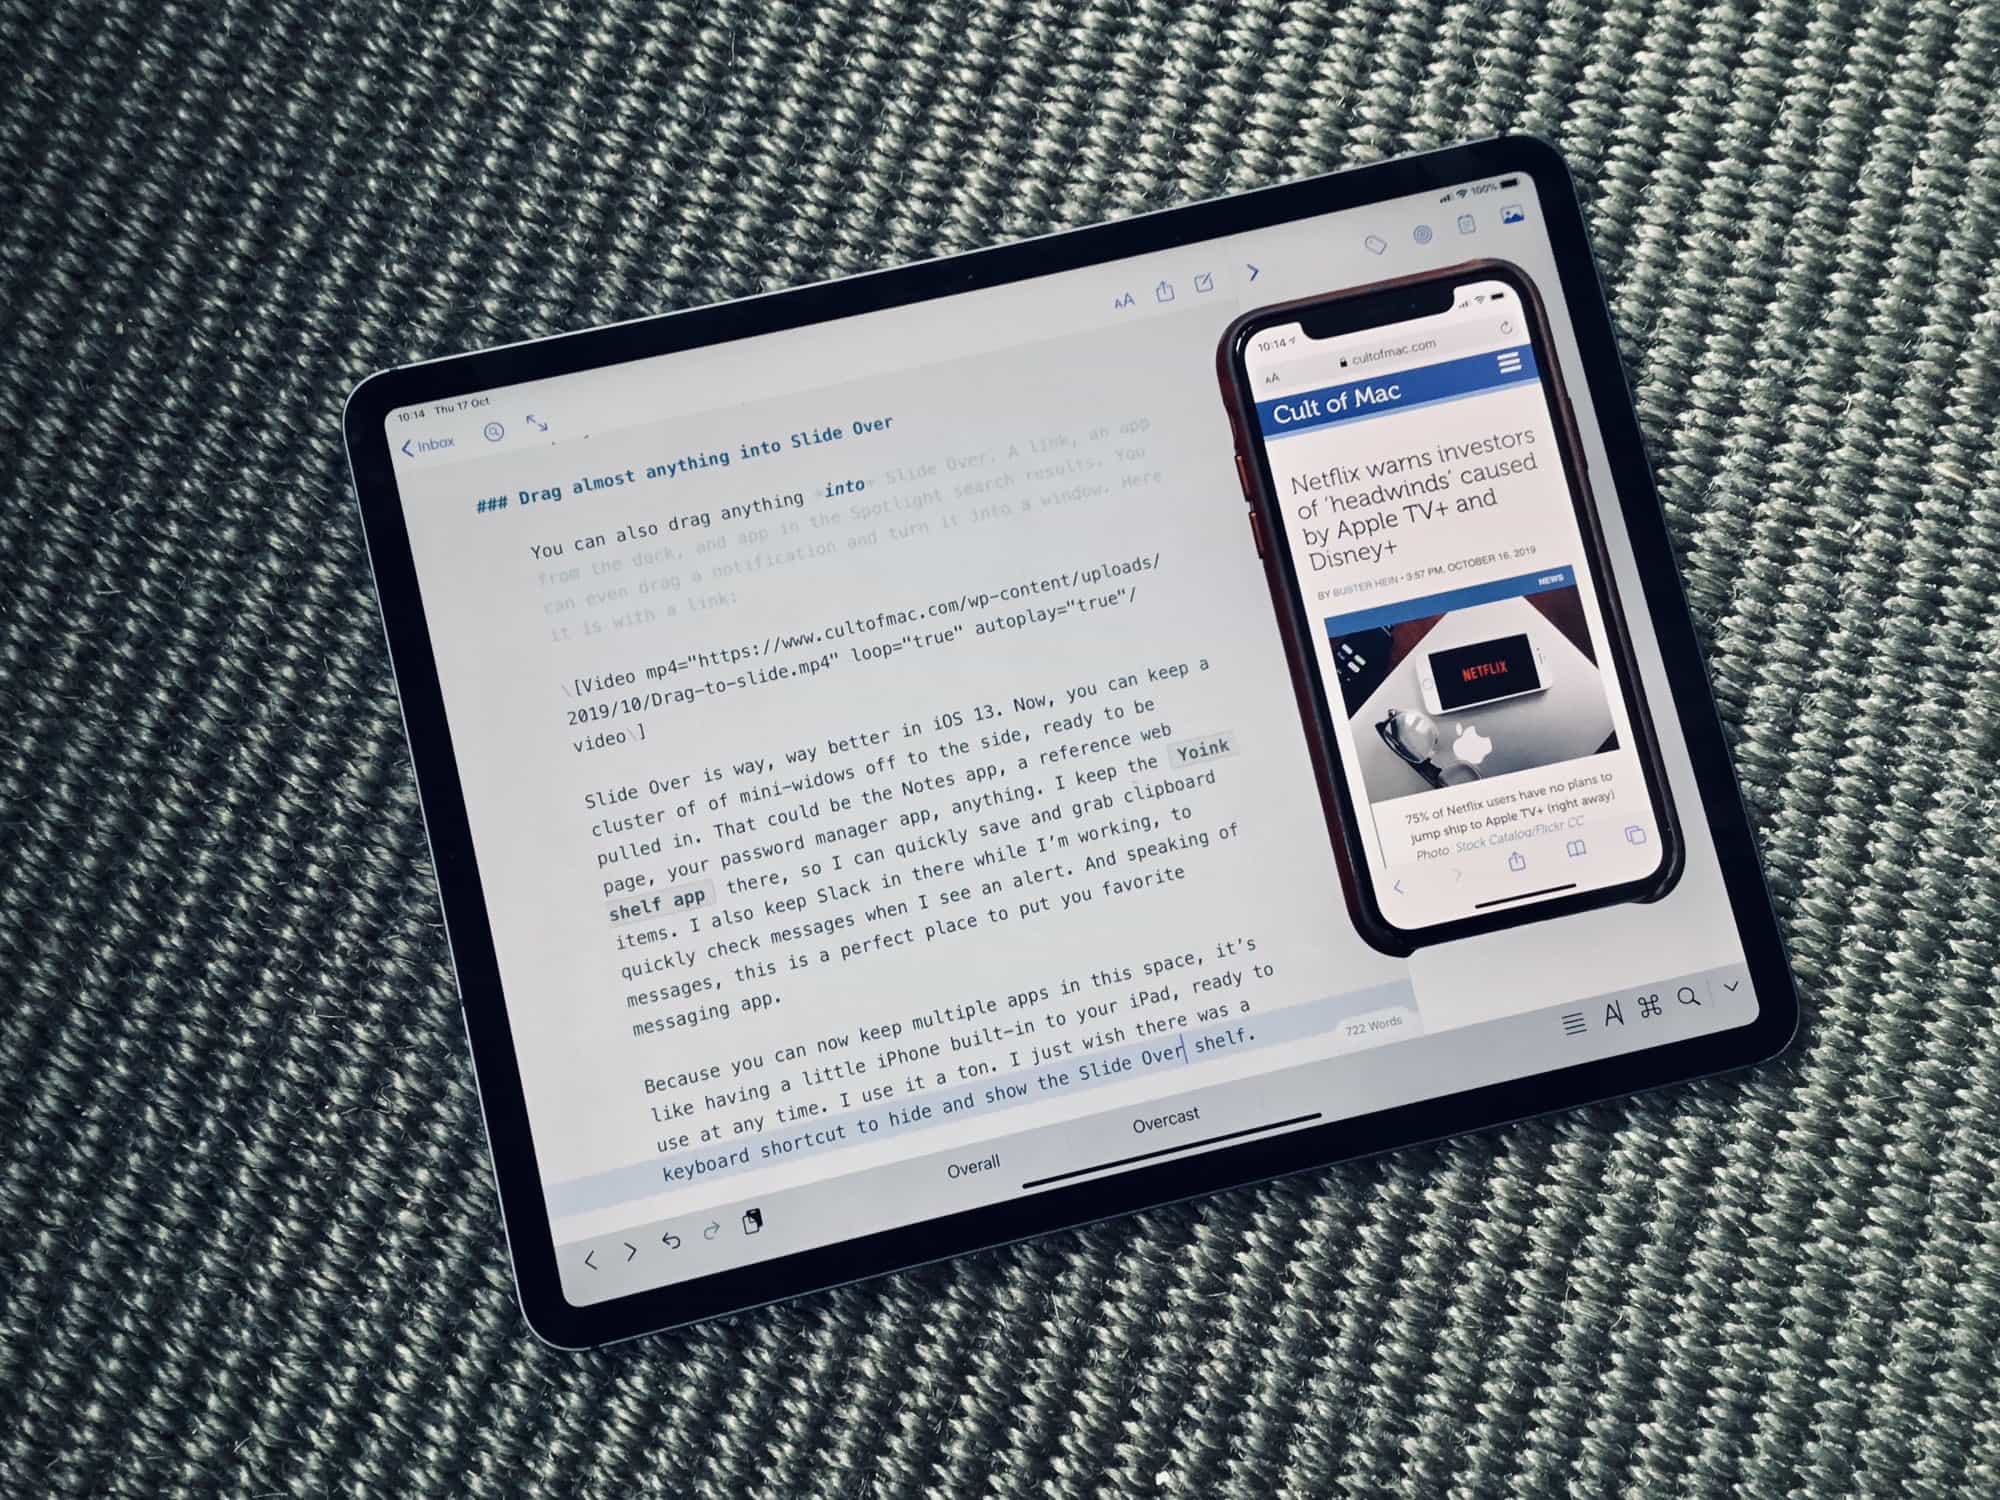 Using Slide Over on iPad Pro with iOS 12